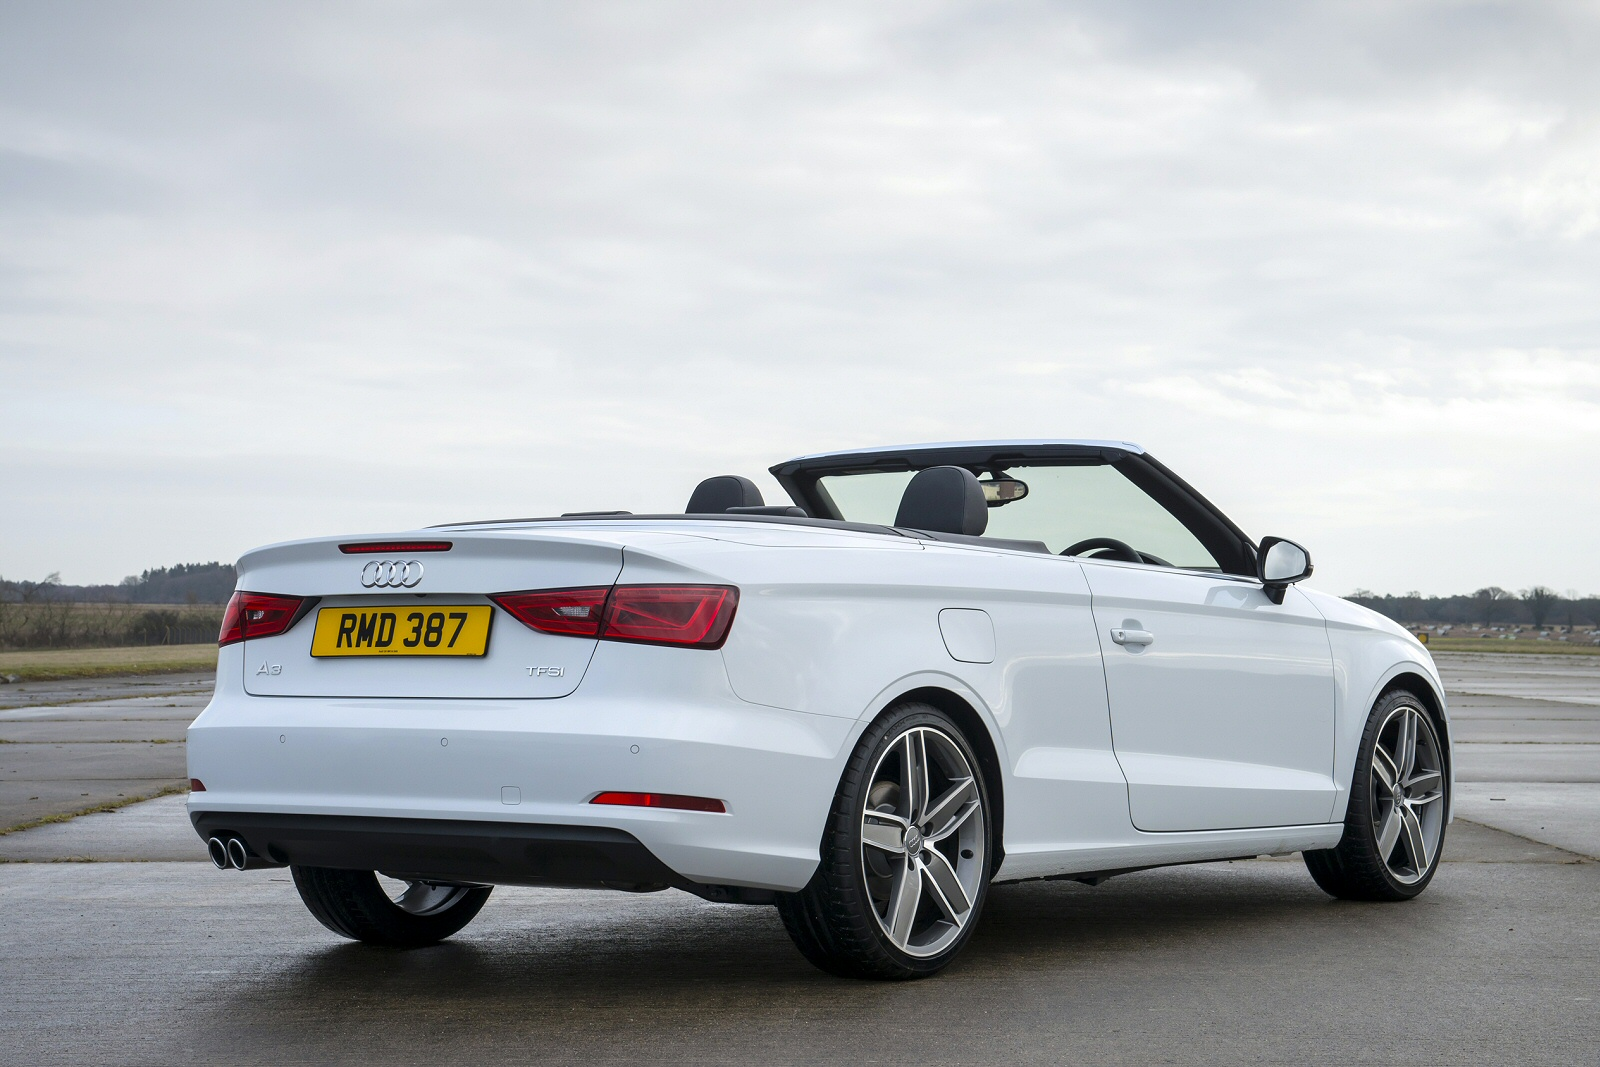 new audi a3 s3 tfsi quattro 2dr s tronic petrol cabriolet for sale hereford audi. Black Bedroom Furniture Sets. Home Design Ideas